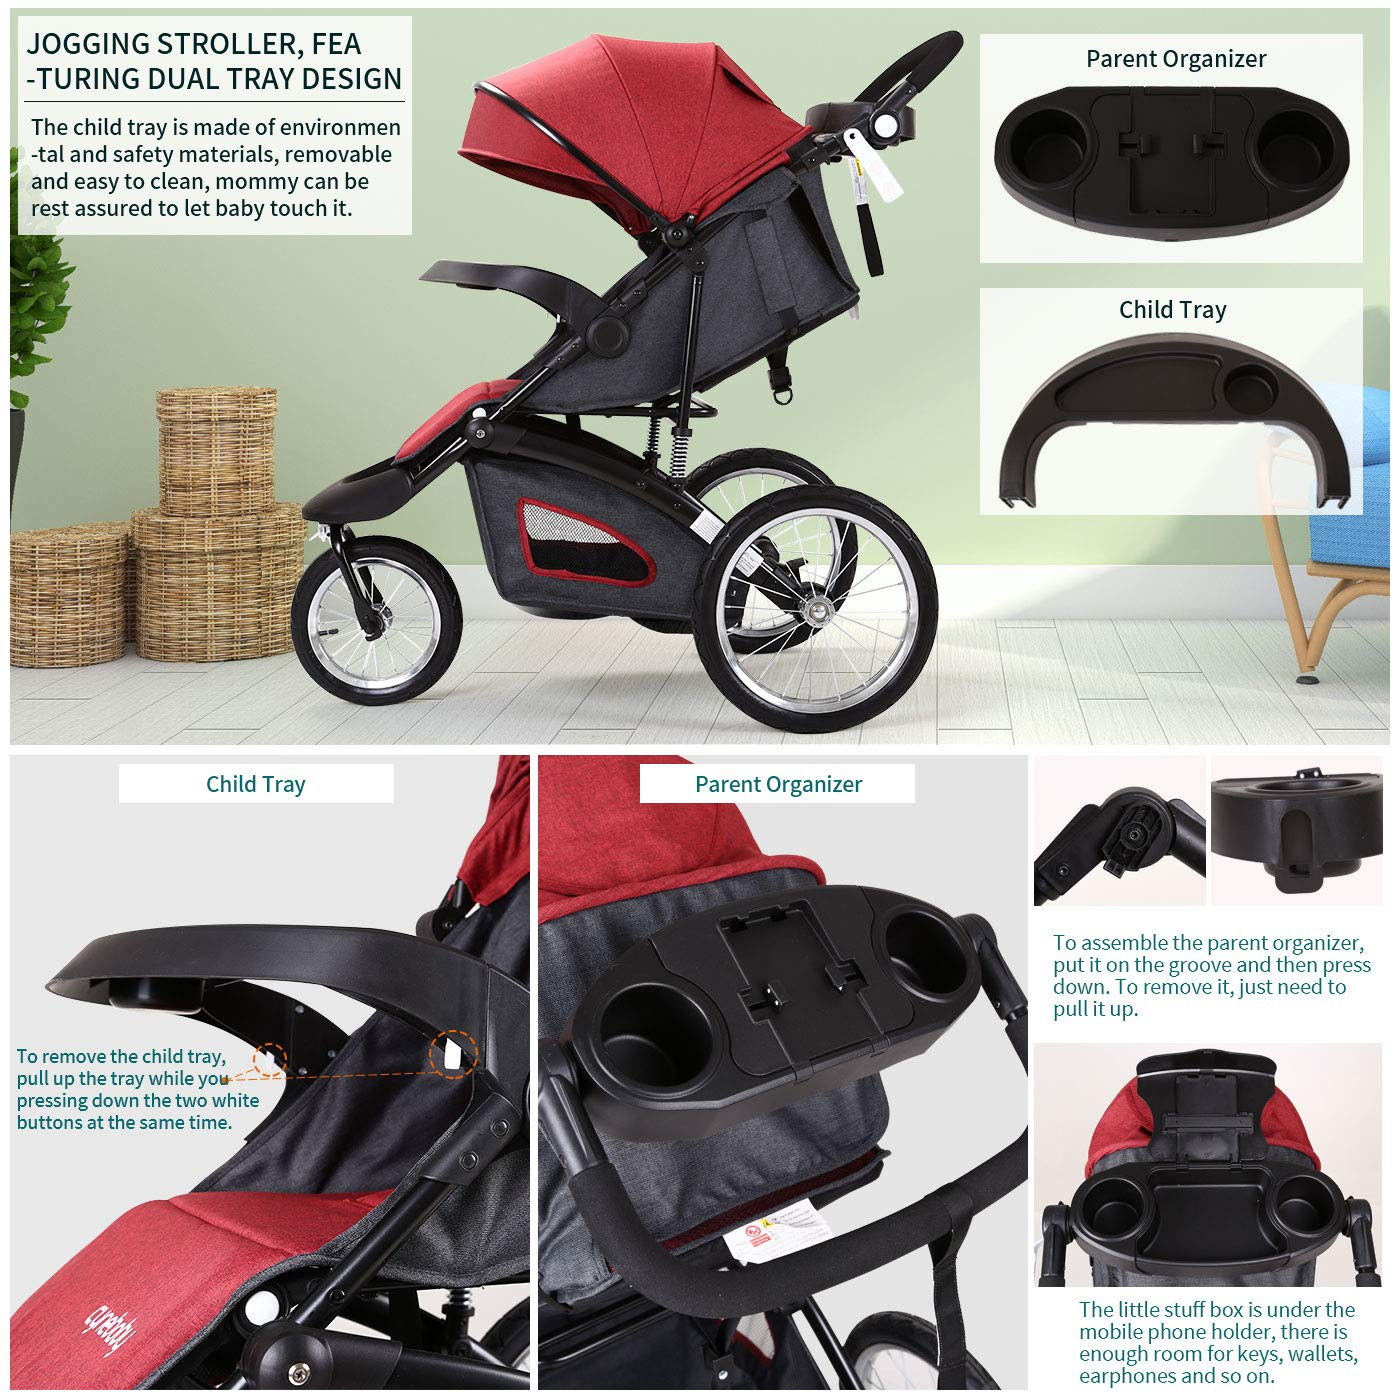 Jogging Stroller Fold City Baby Jogger Travel Citi Jog Strollers Single Toddler Baby Pram Jogging Compact Urban Ultralight Joggers Beby Carriage Pushchair Stroller Travel System by Cynebaby / HAIXIAO (Image #4)